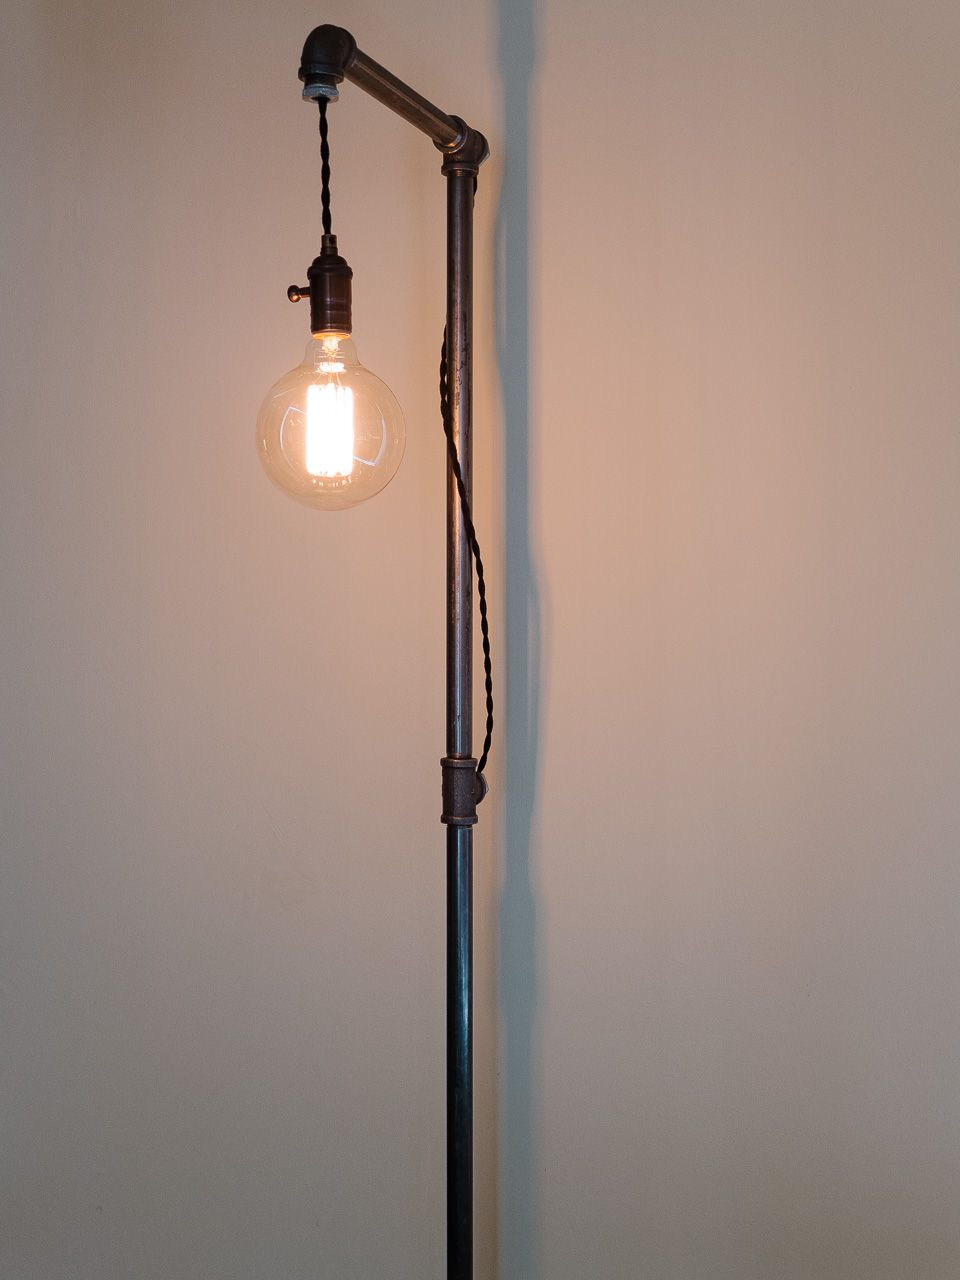 Handmade gas pipe floor lamp made by customer Greg in Los